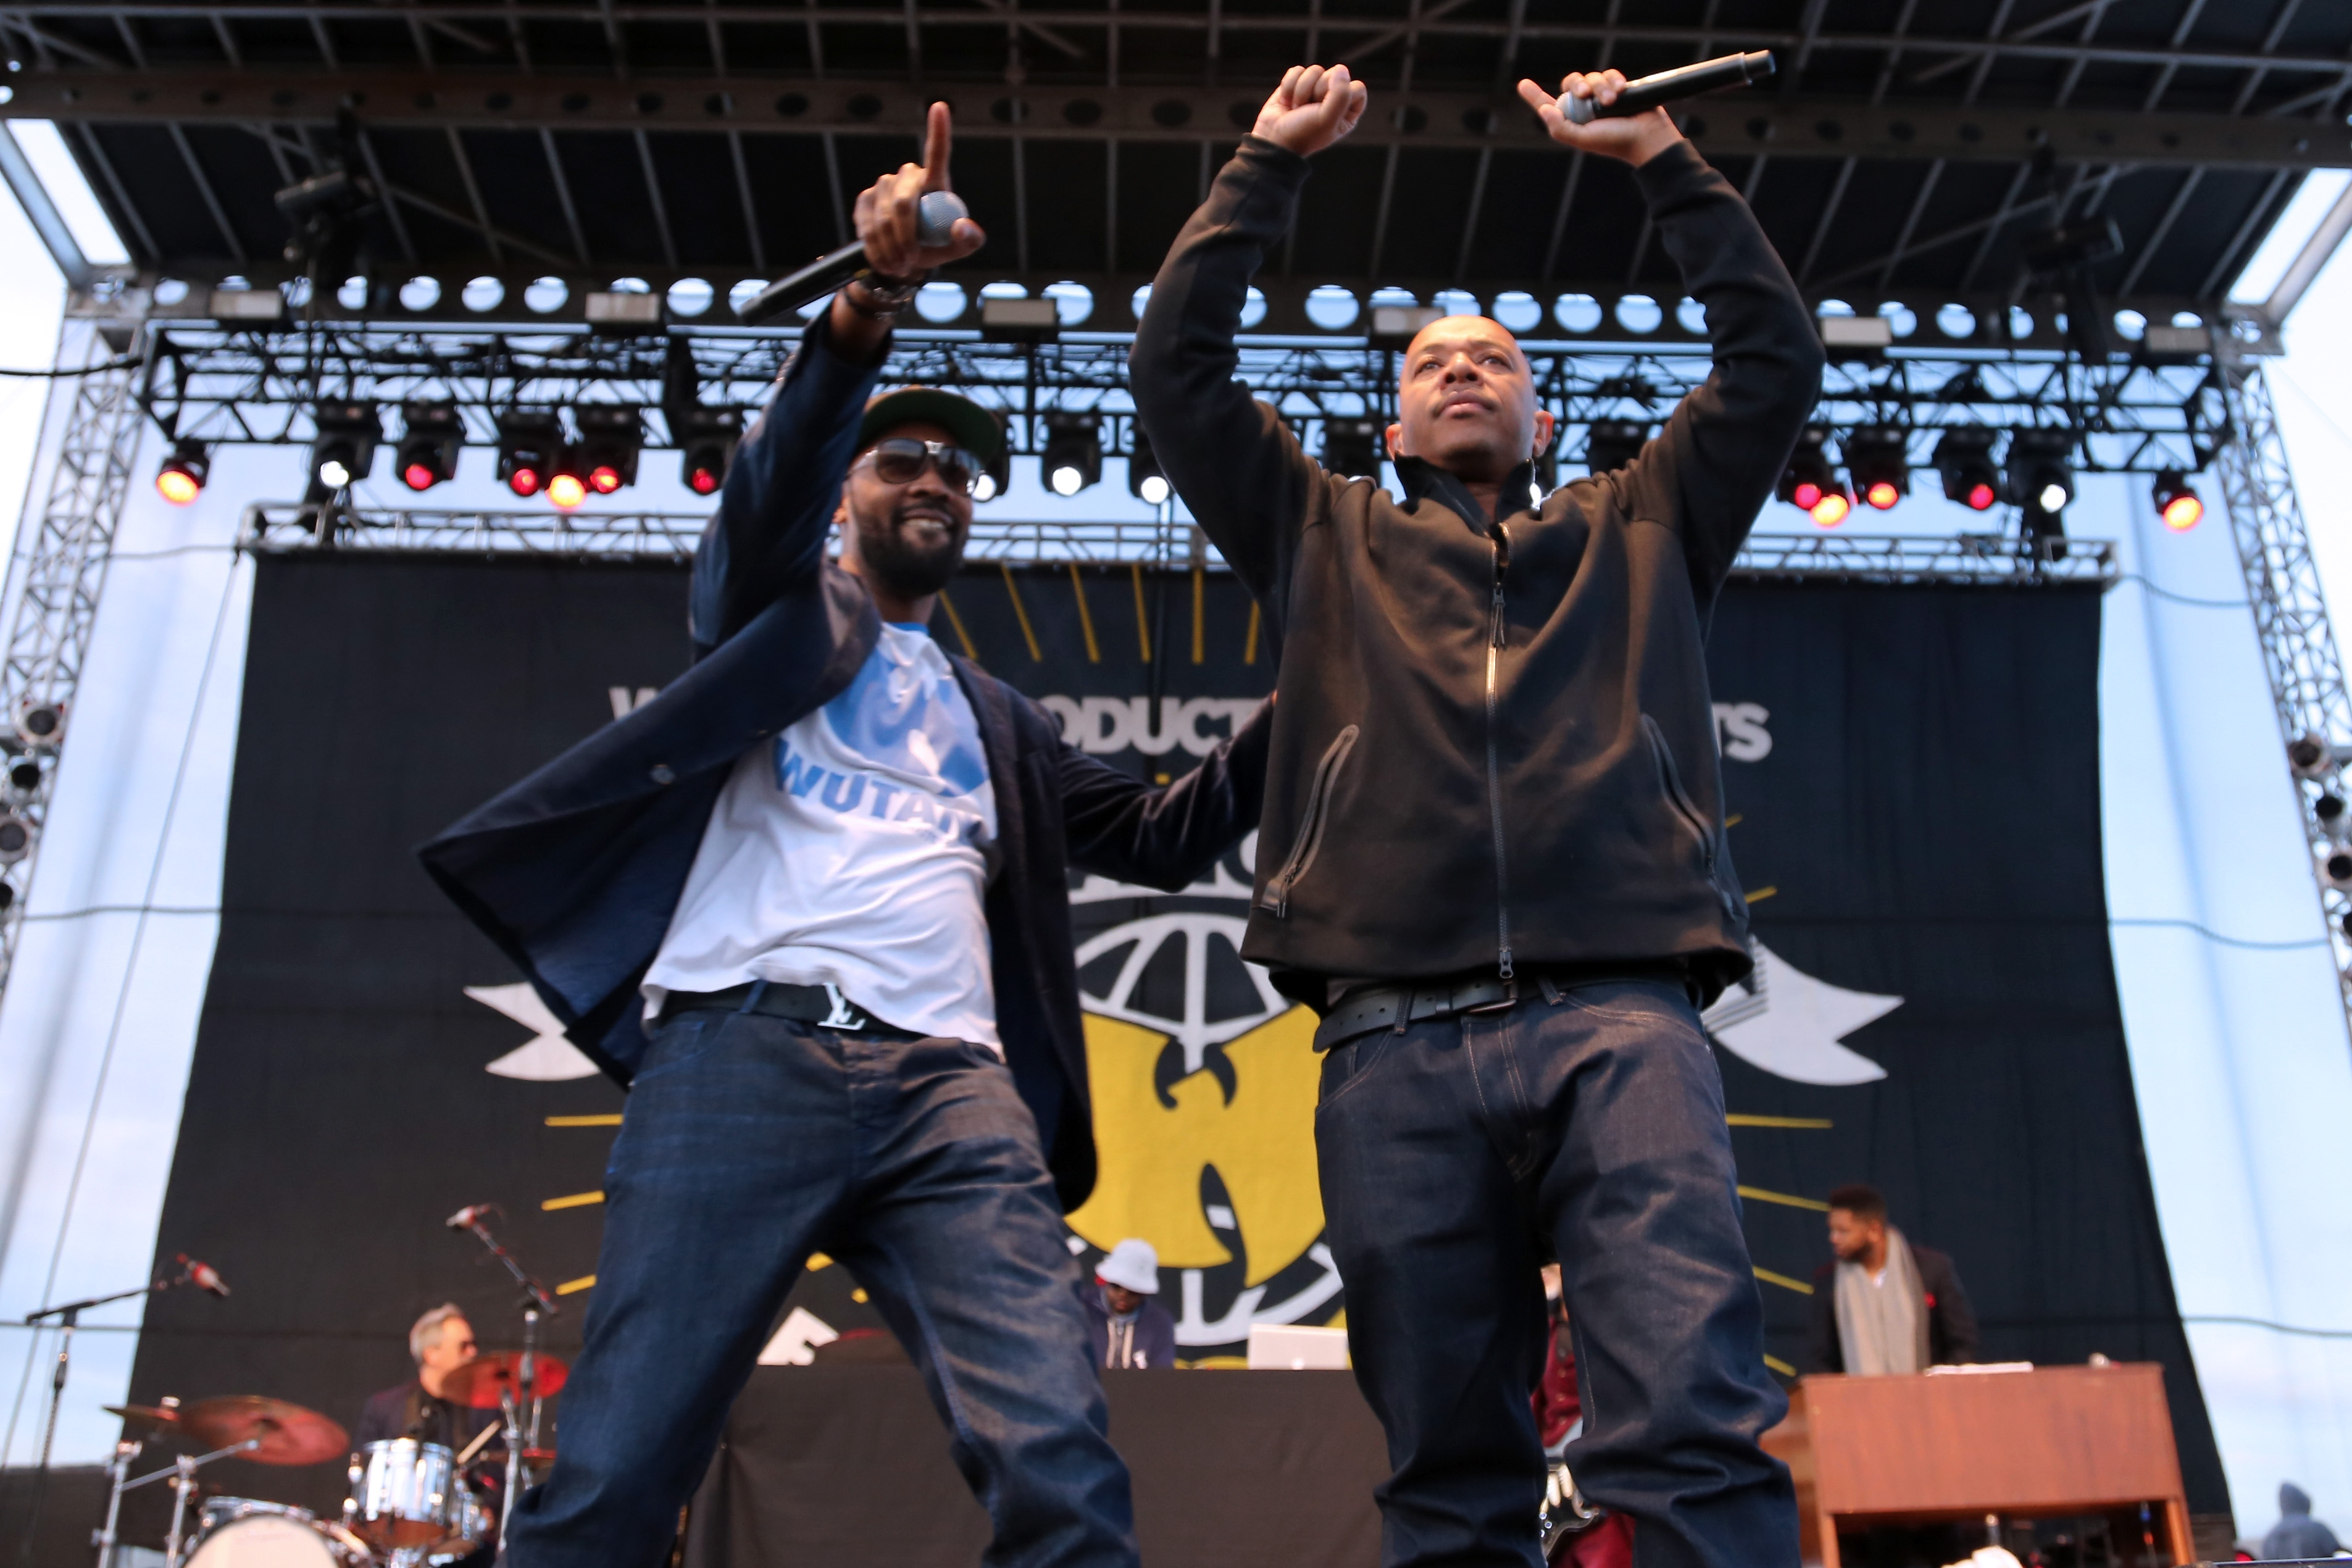 RZA and U-God of Wu-Tang Clan perform on stage during the 2015 Riot Fest at Downsview Park on September 20, 2015 in Toronto.